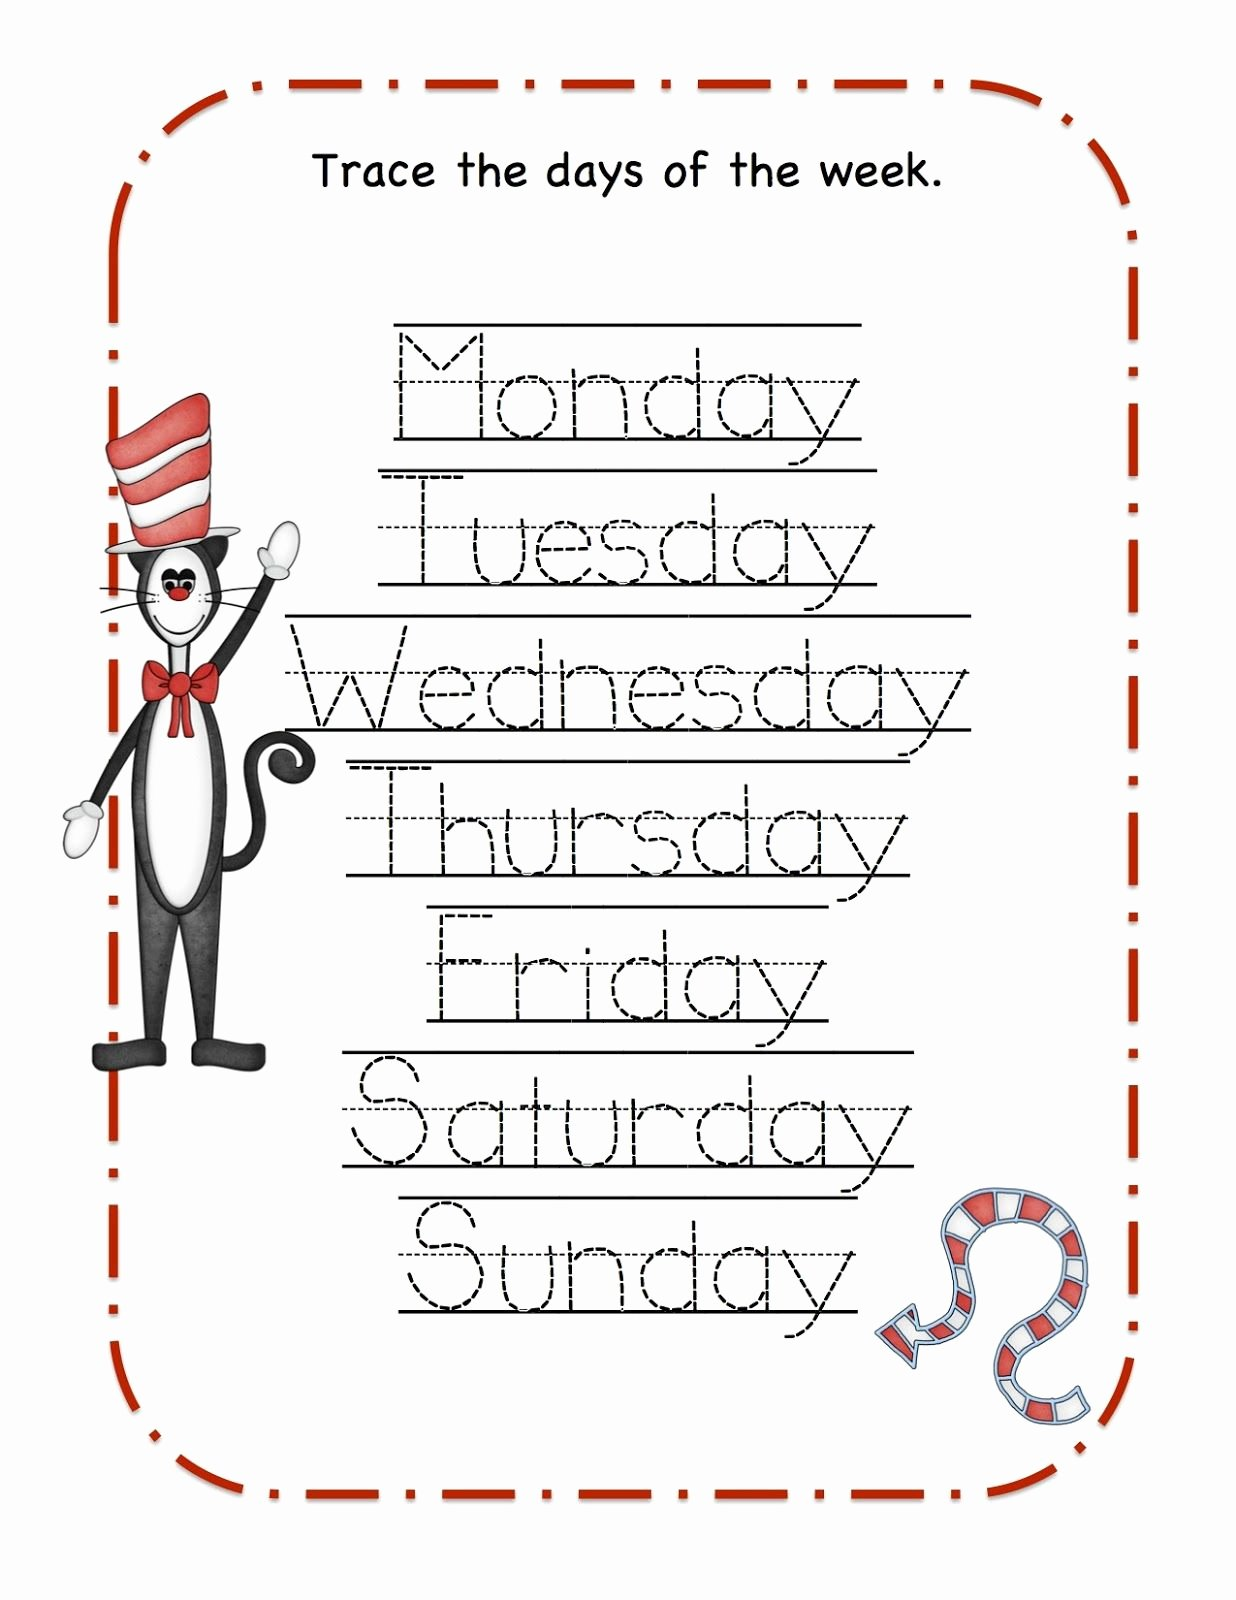 Dr Seuss Worksheets for Preschoolers Free Daysofthweek Tracing Drseuss